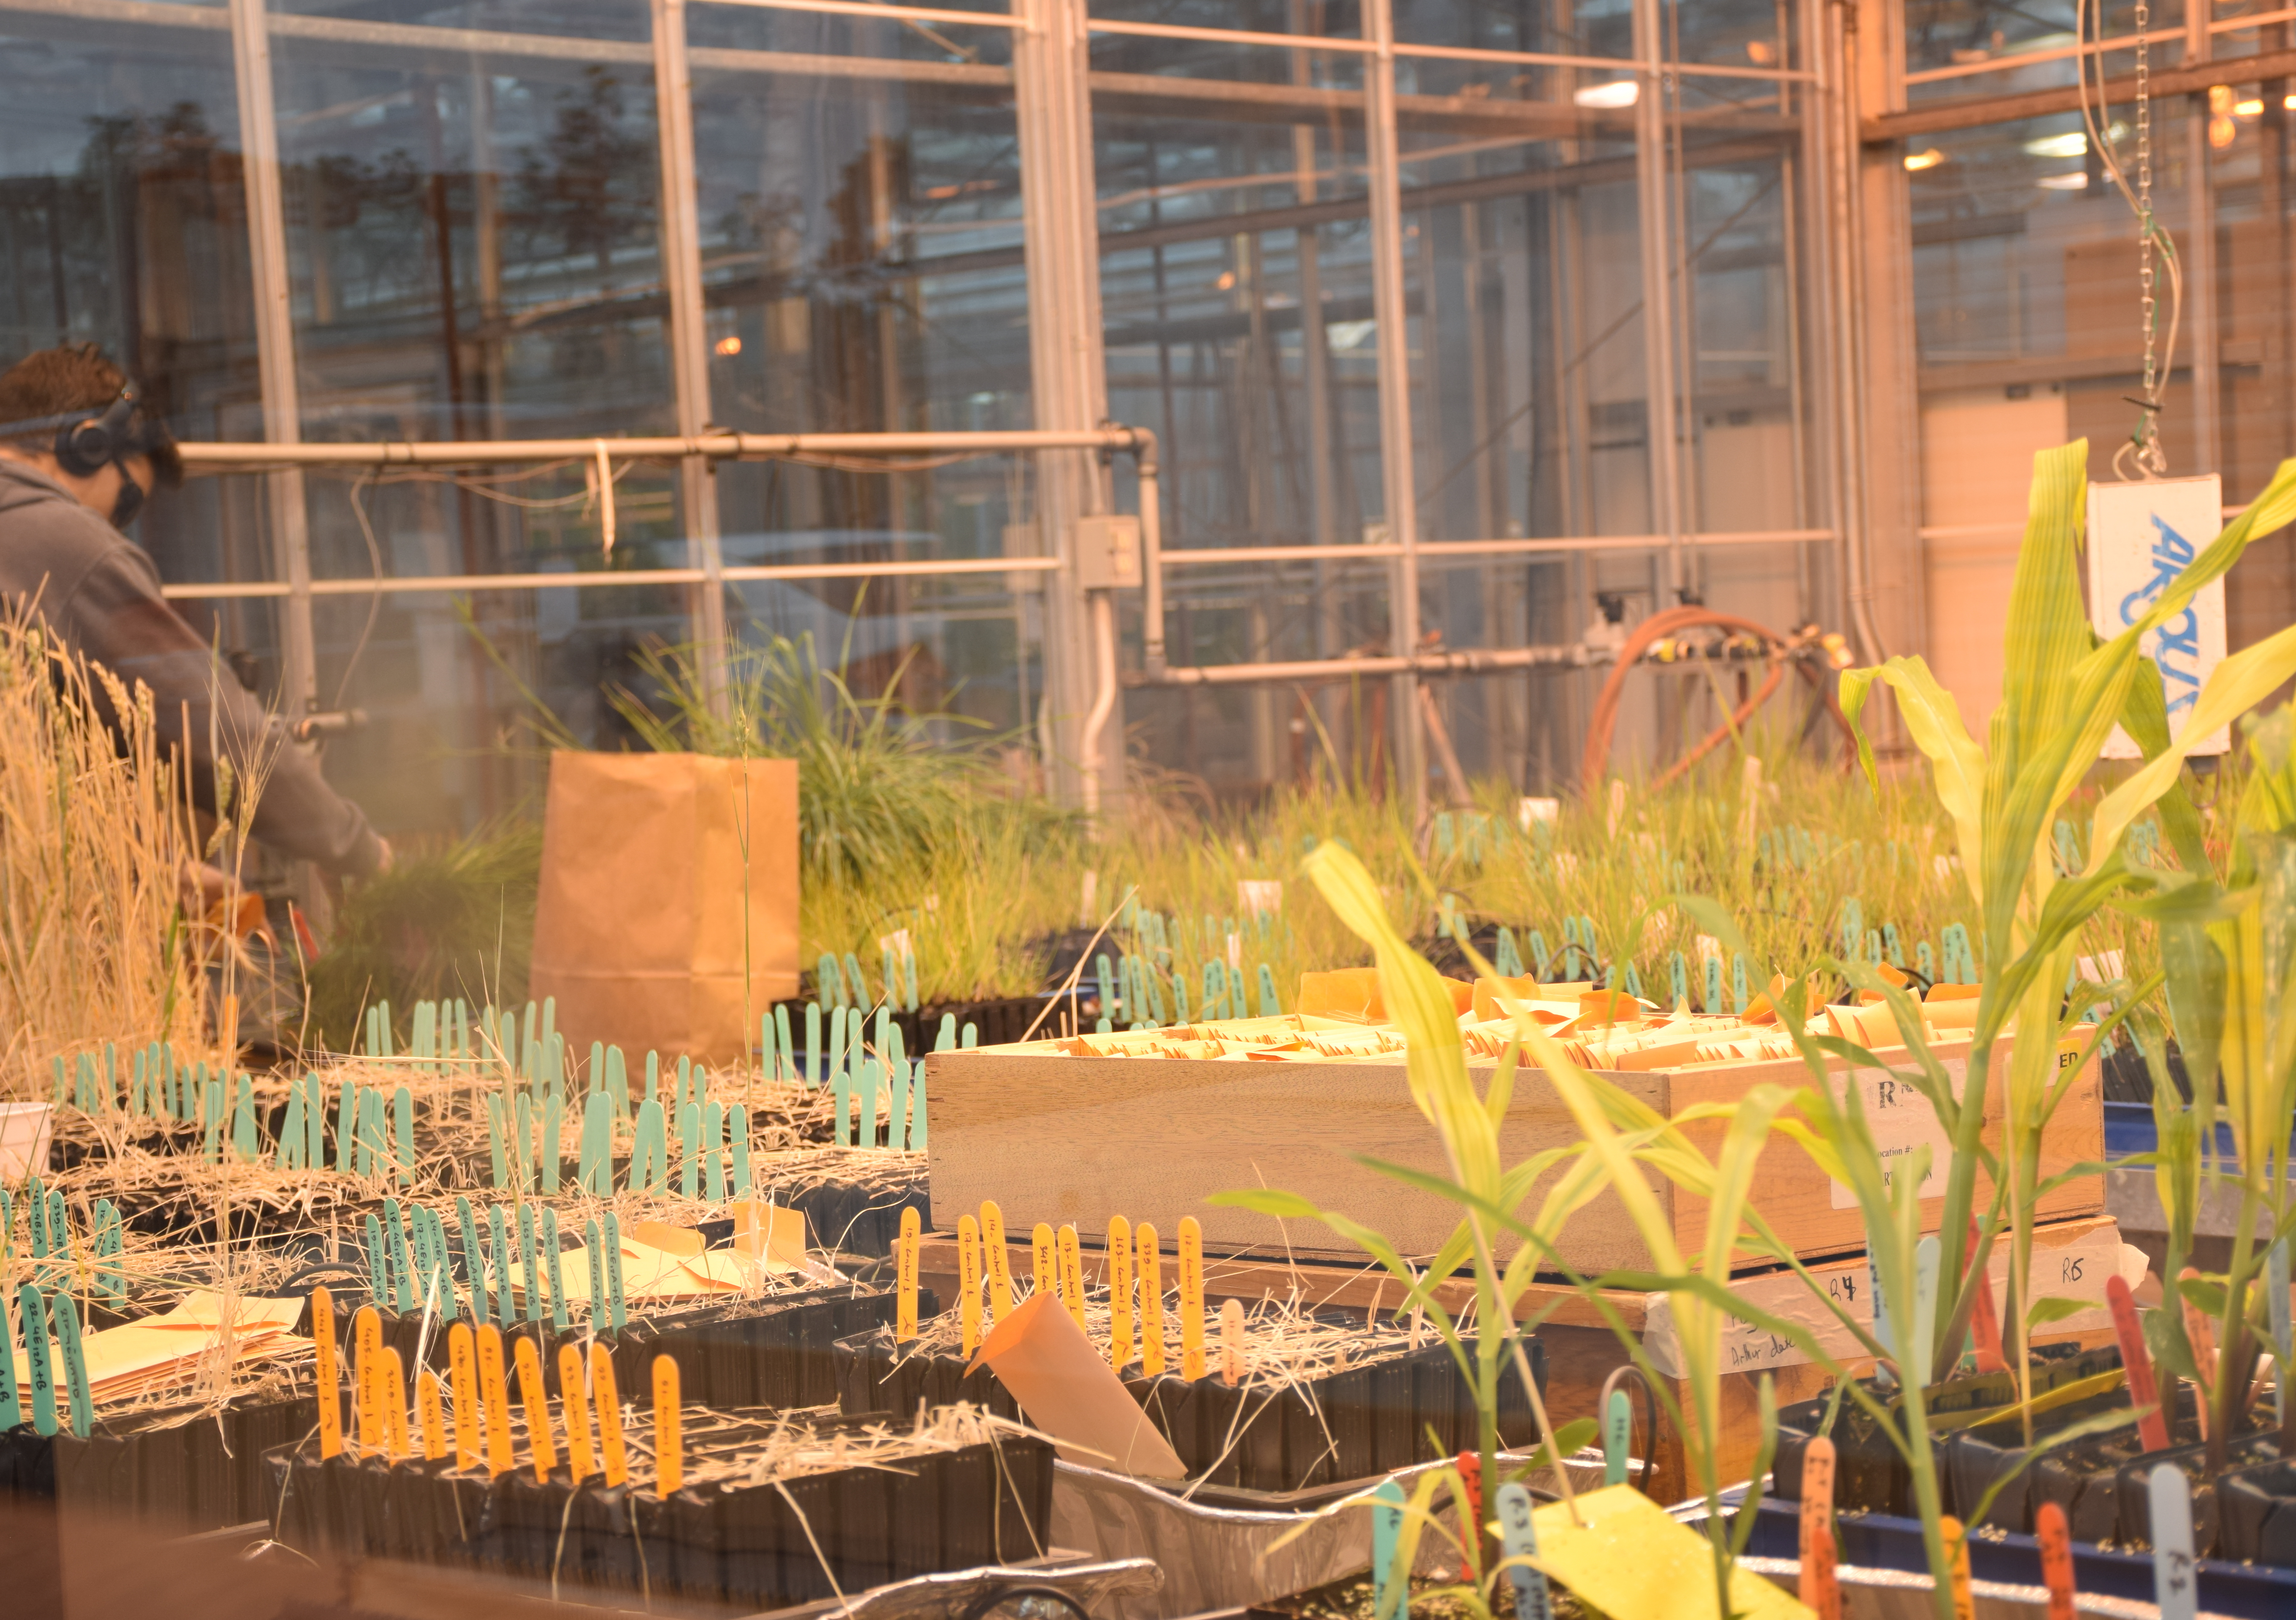 Grasses in the U of G greenhouses